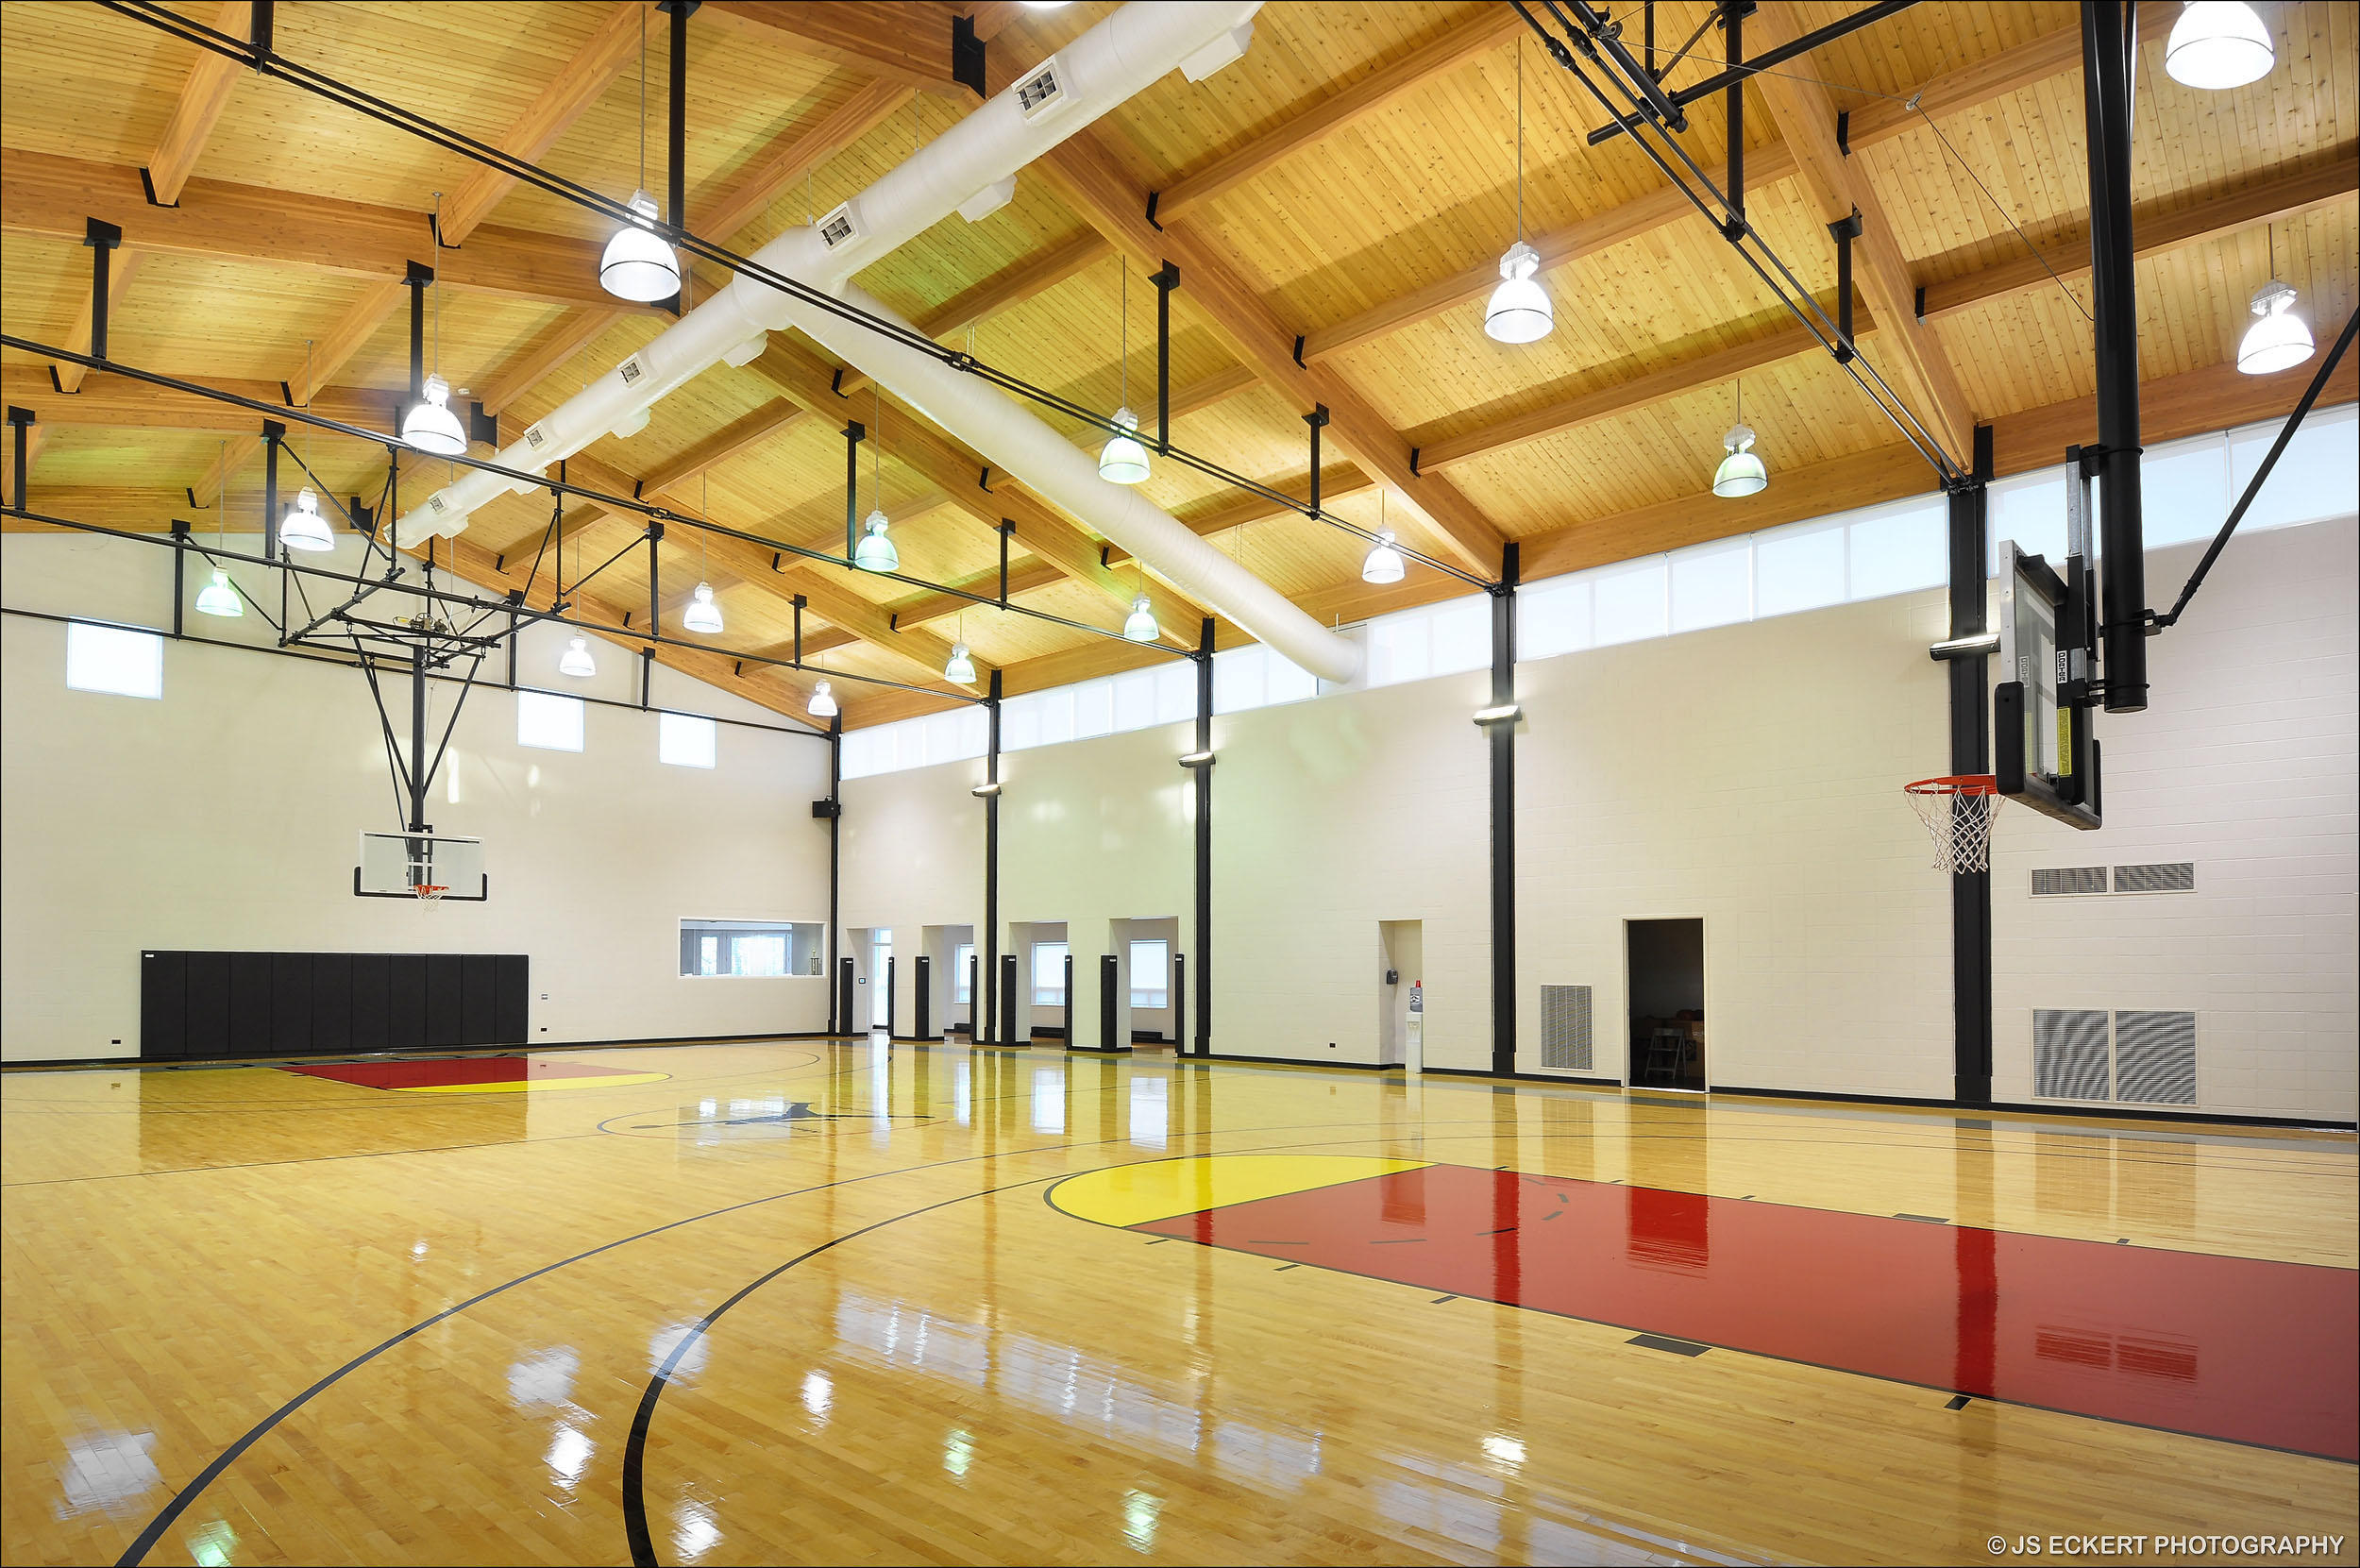 Michael Jordan's home. Sports legend Michael Jordan is selling his amazing mansion - fit with a full-size indoor basketball court - for a staggering $29 million. The sale of his sprawling mansion in Highland Park is one of the most expensive in Chicago re